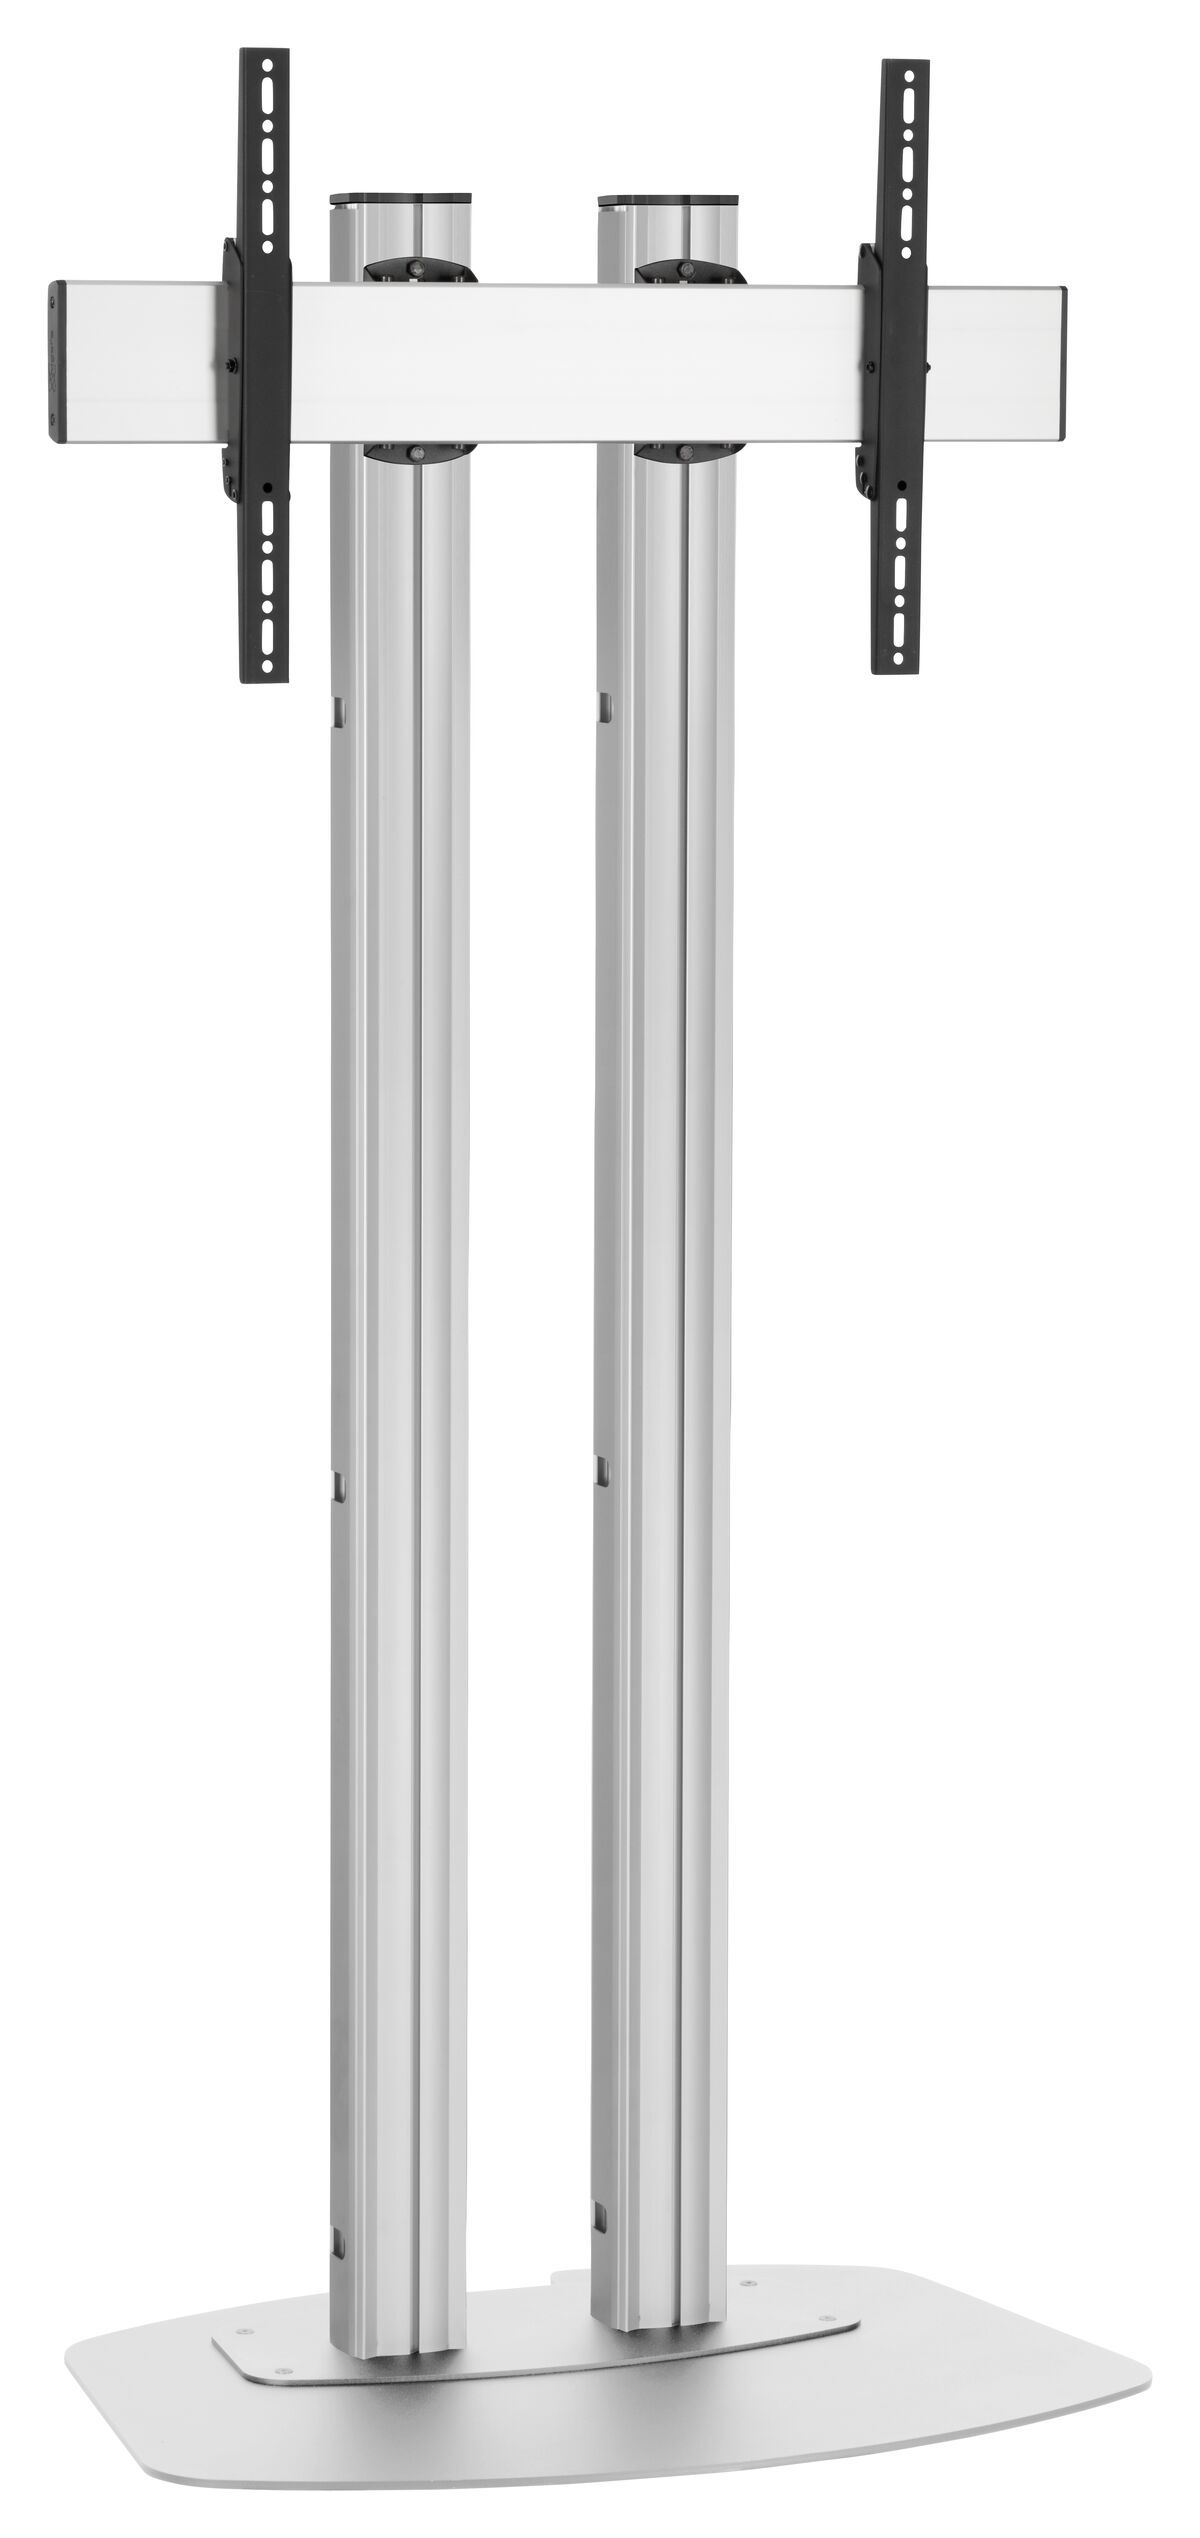 Vogel's FD2084S Floor stand - Product